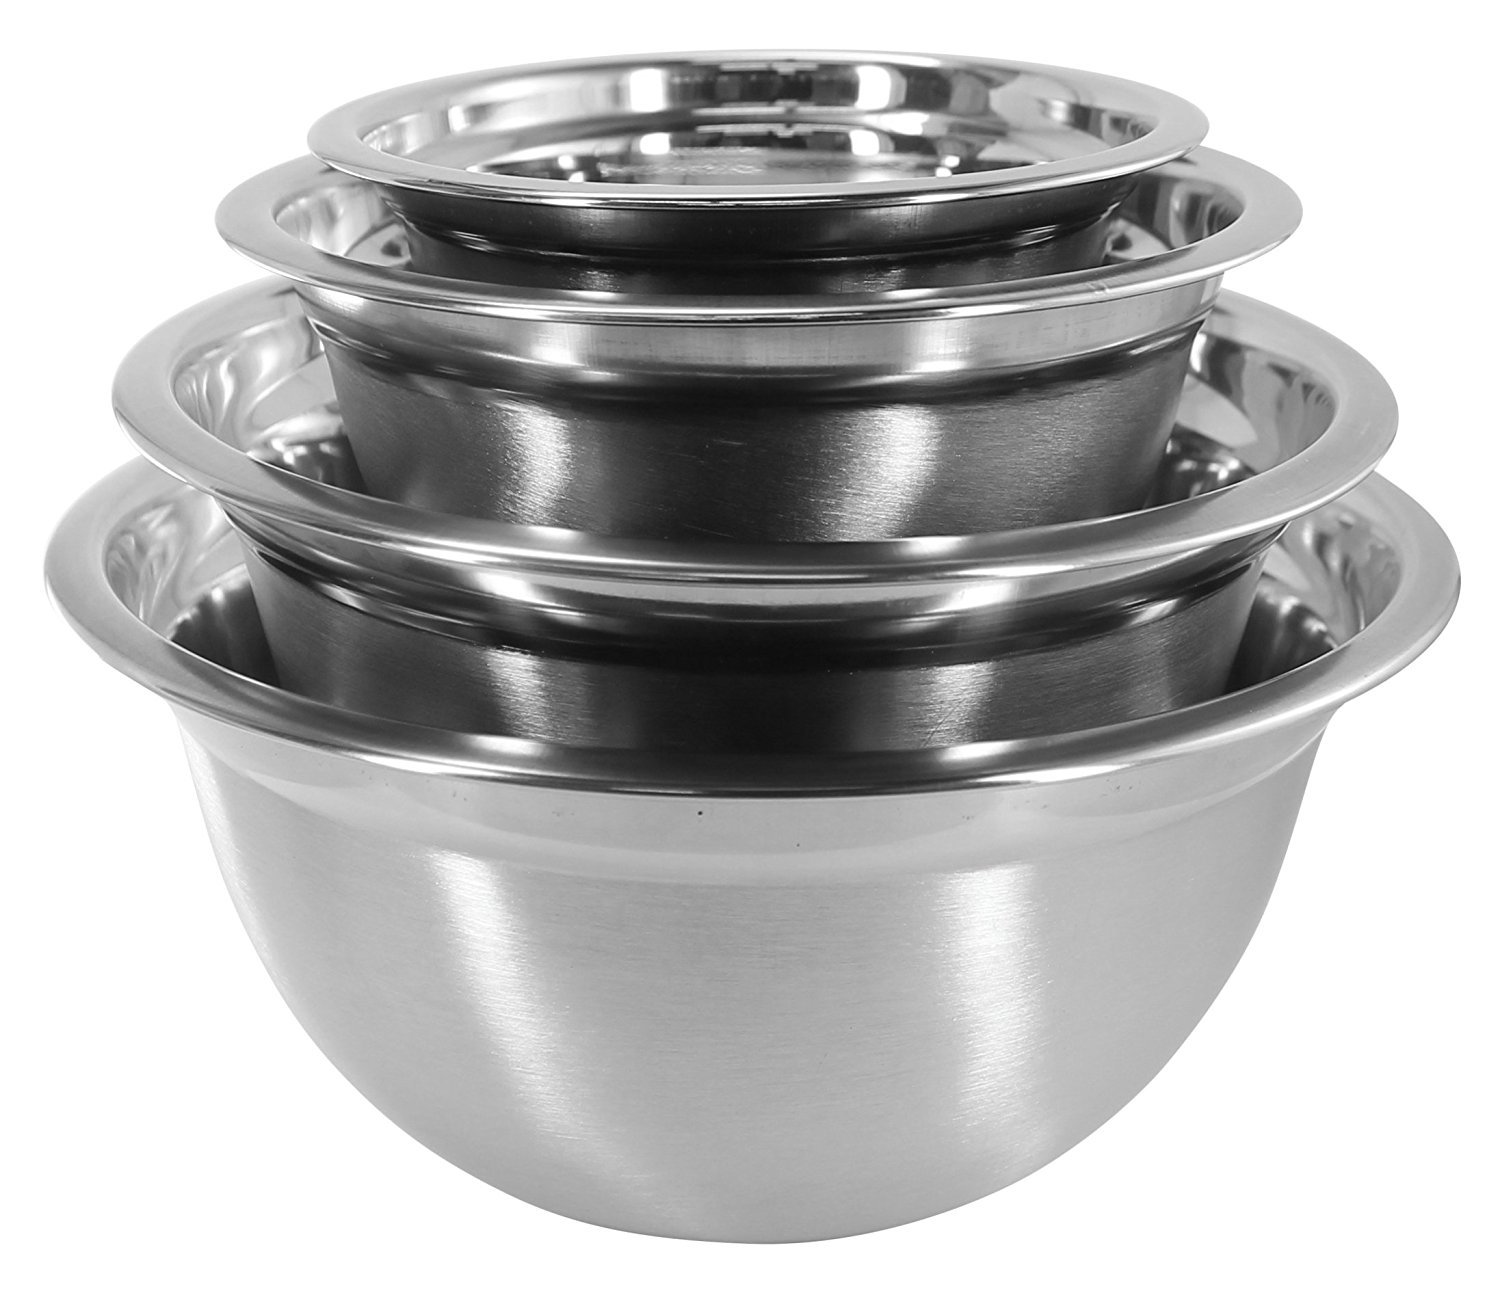 Iconikal 4-Piece Stainless Steel Mixing Bowl Set - EZ-Grip Edges